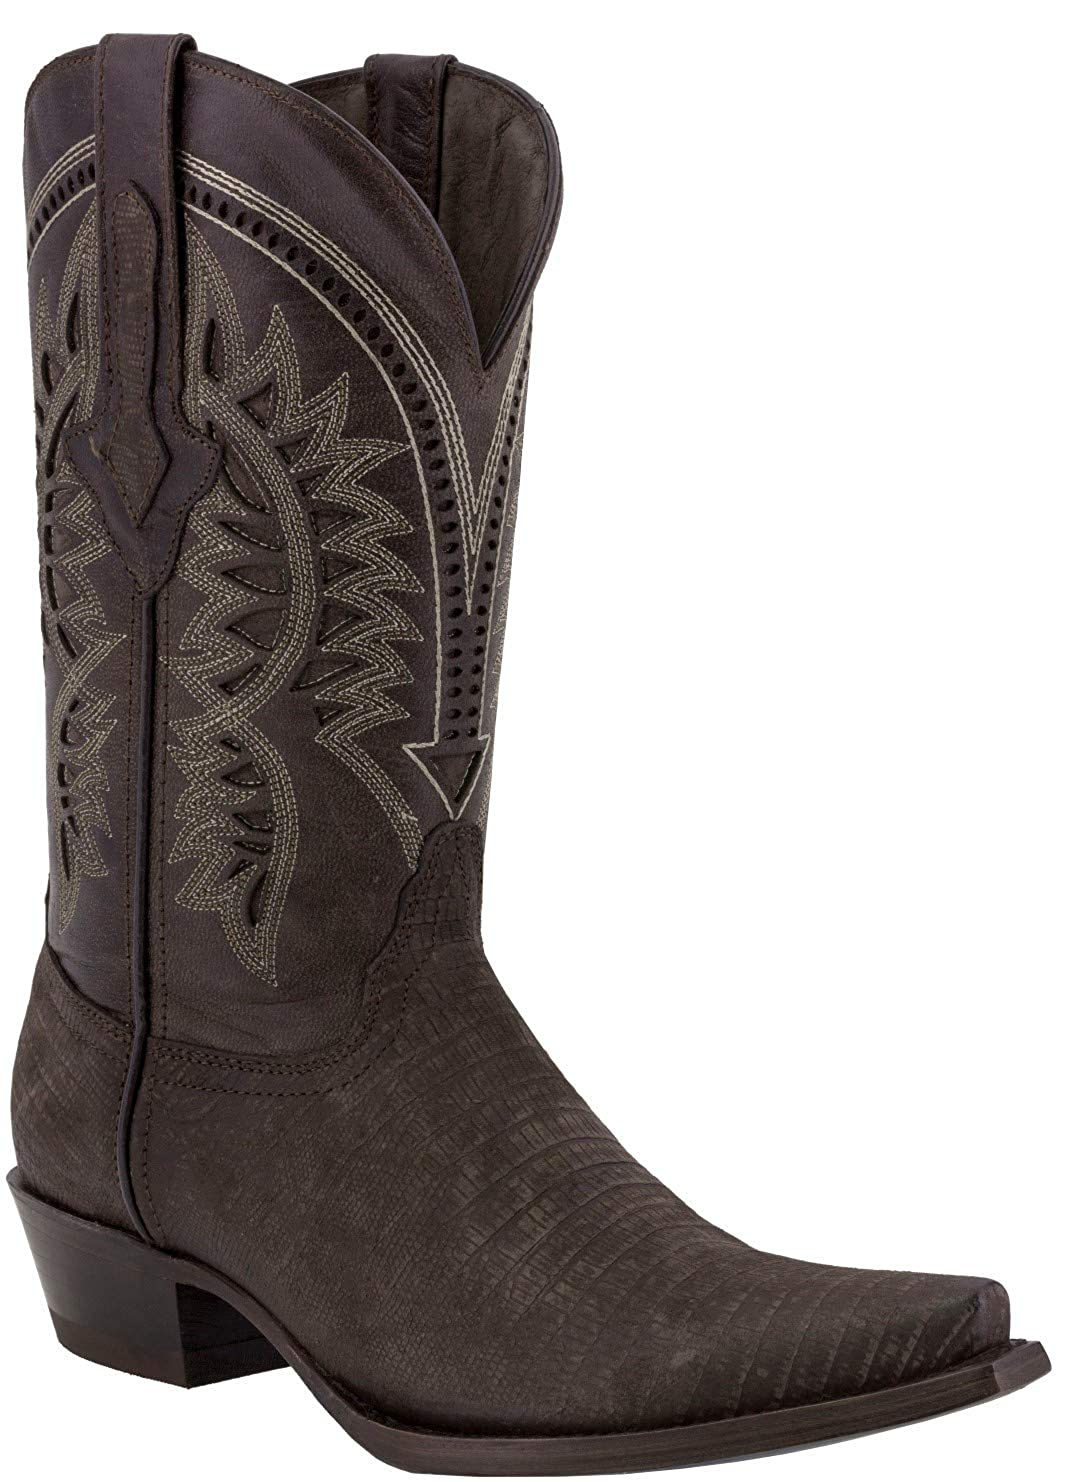 search for authentic sale online many choices of Texas Legacy - Mens Lizard Western Wear Cowboy Boots Pattern Leather Snip  Toe